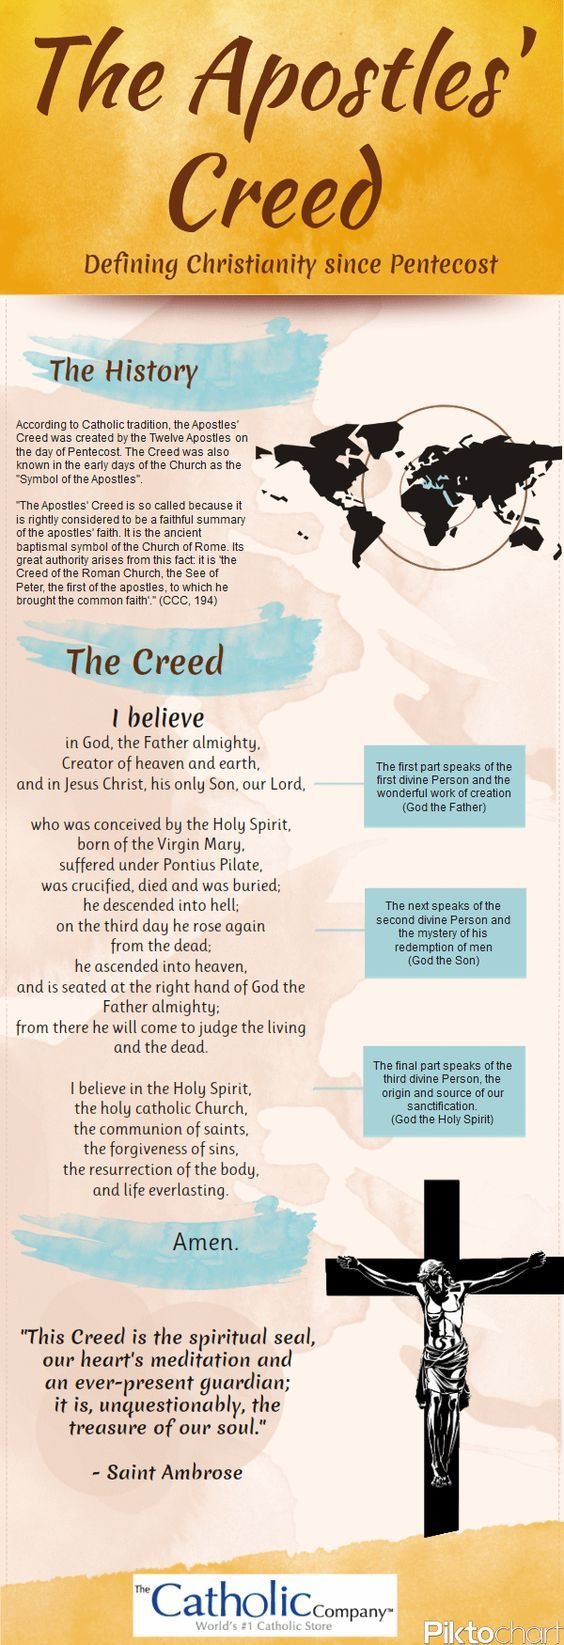 The Apostle's Creed Infographic: The history of the creed that we say as the first prayer of the rosary, and also sometimes prayed at mass instead of the Nicene Creed.